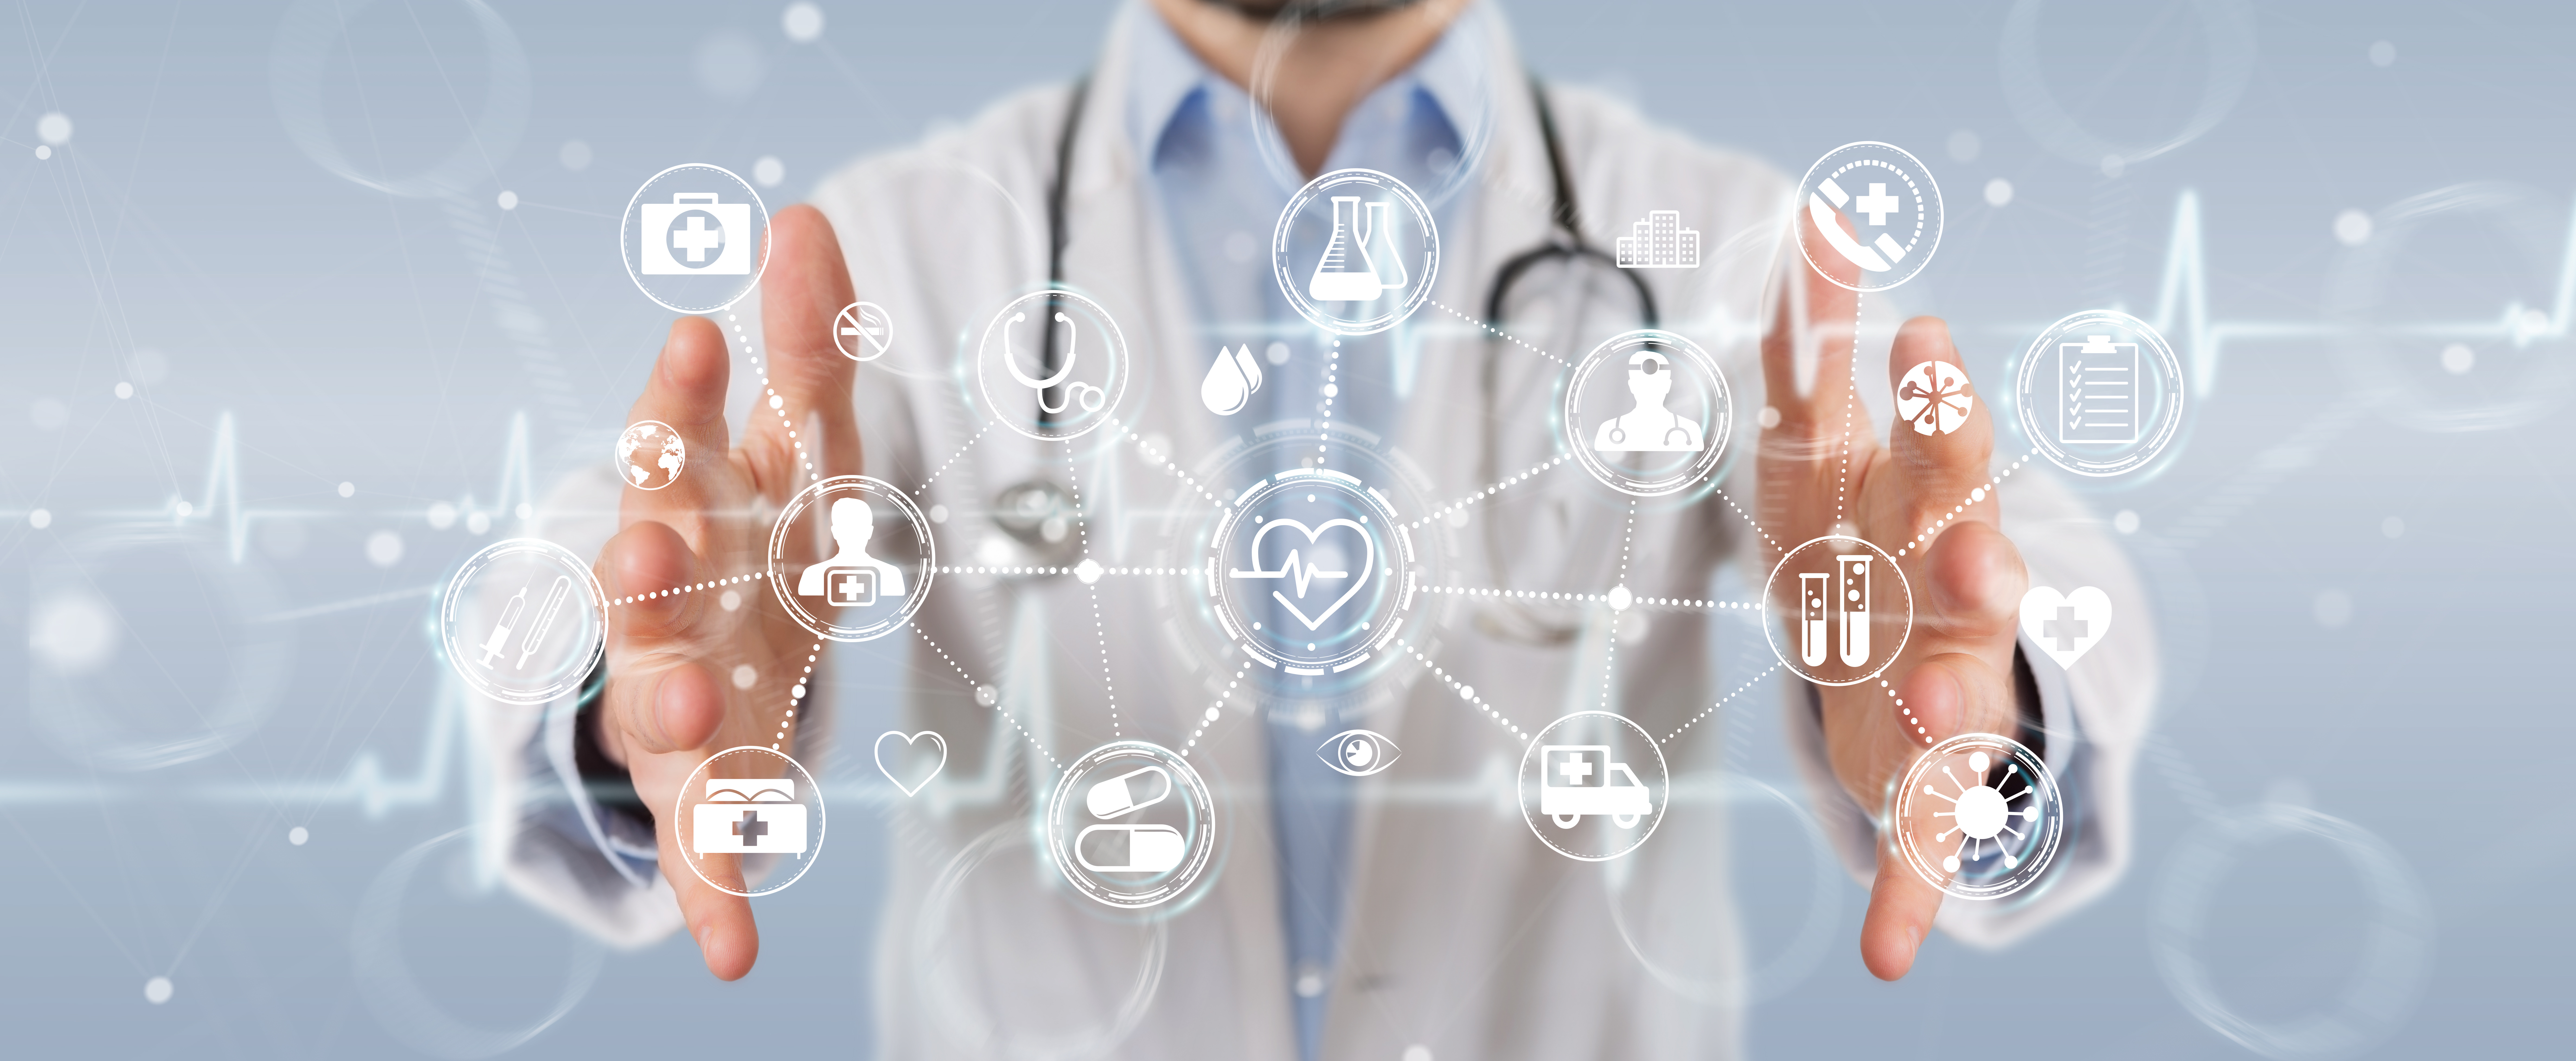 Doctor on blurred background using digital medical futuristic interface 3D rendering